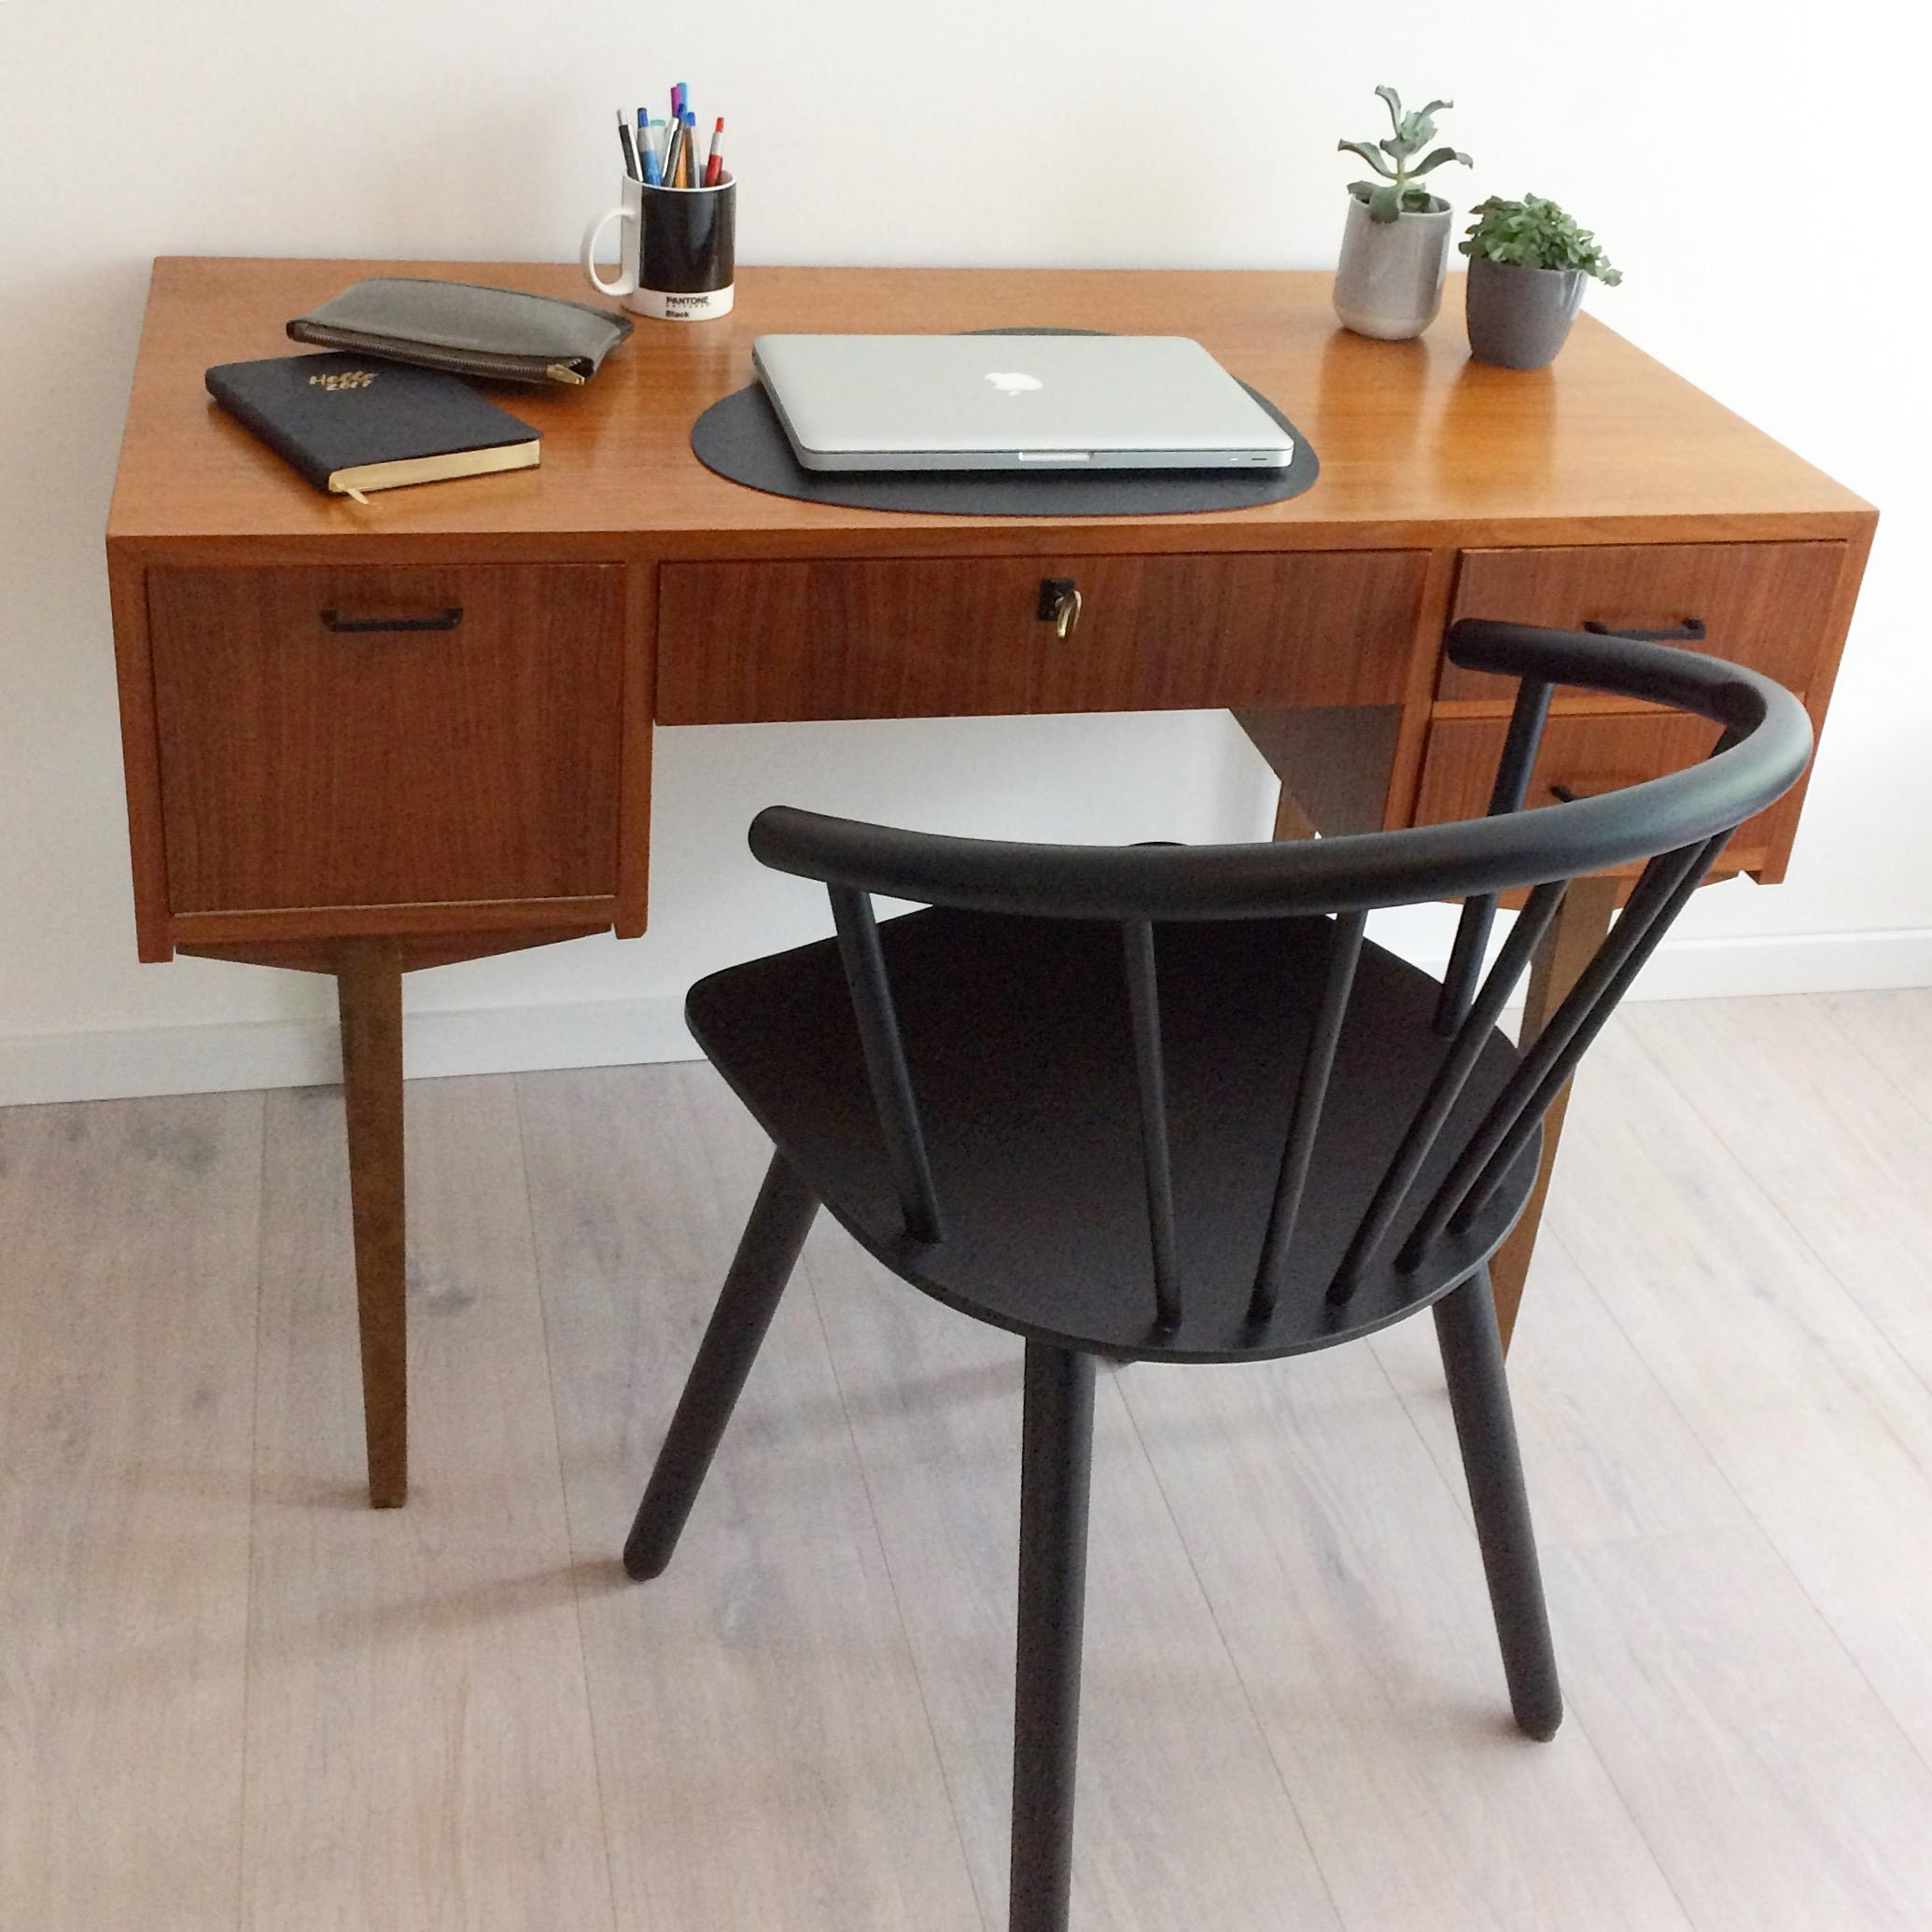 #interior #desk #workspace #teak #midcentury #vintage